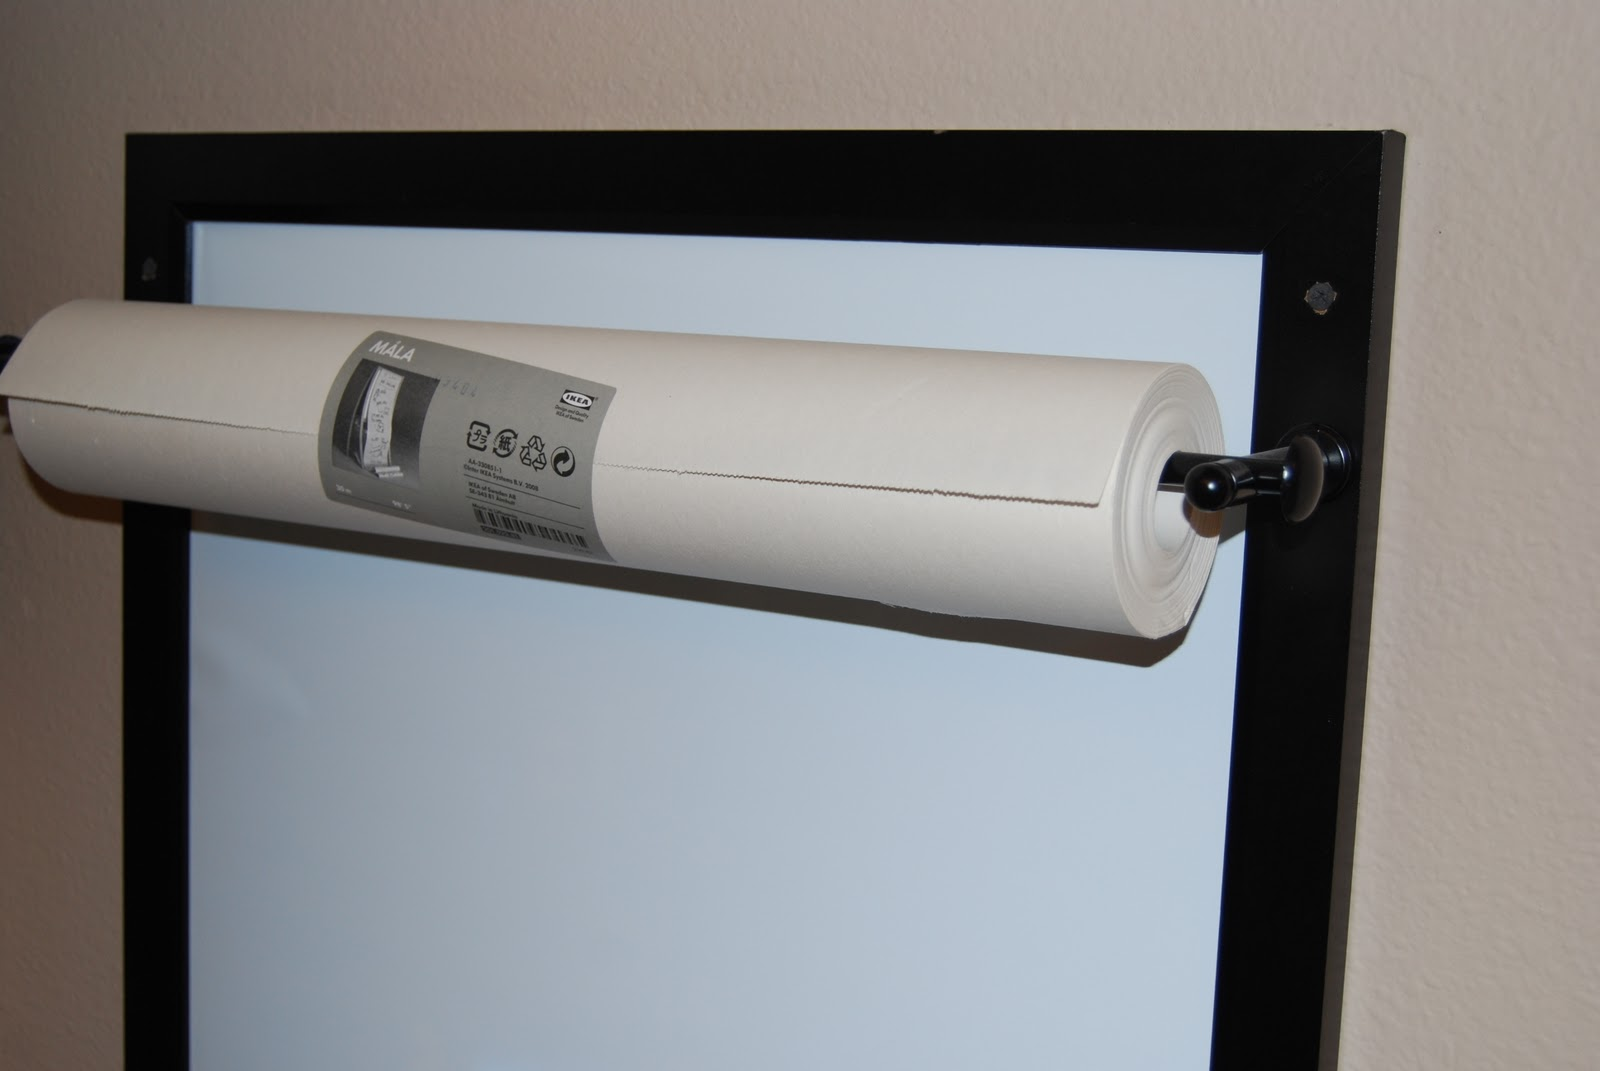 ... to the wall, with screws - add paper roll to curtain rod and enjoy